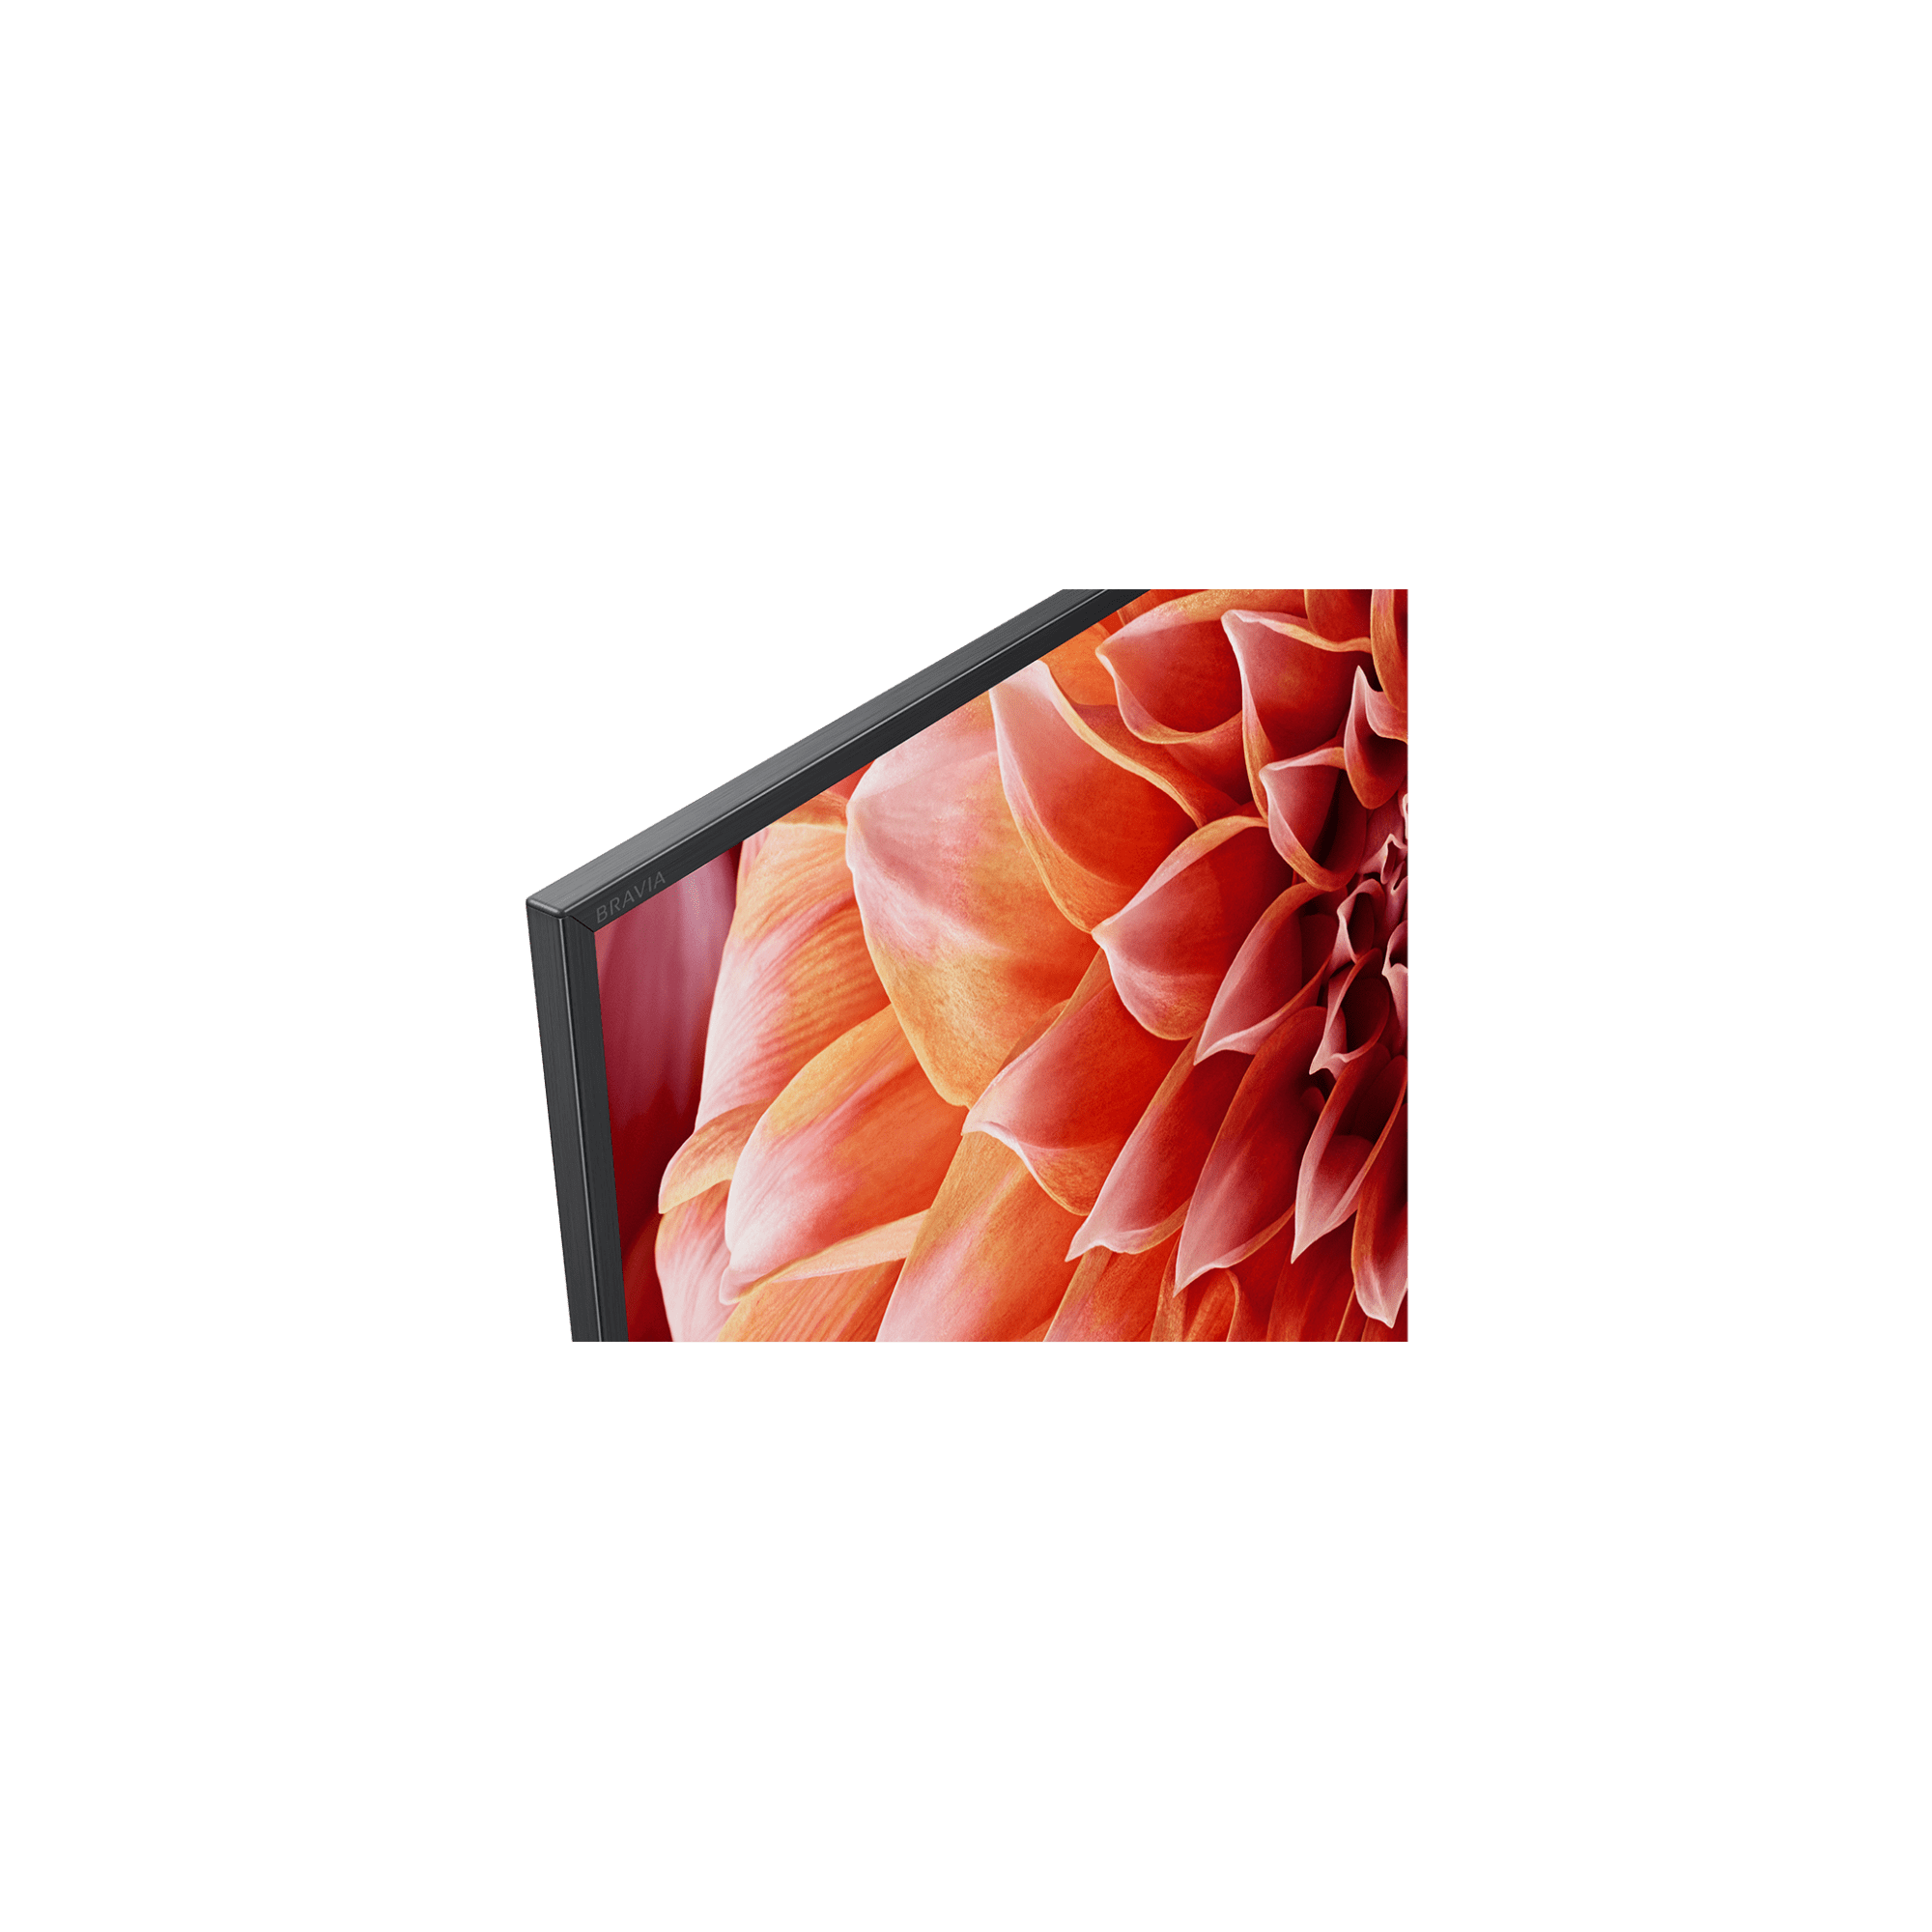 """65"""" X90F LED 4K Ultra HDR Android TV with Dolby Vision, , product-image"""